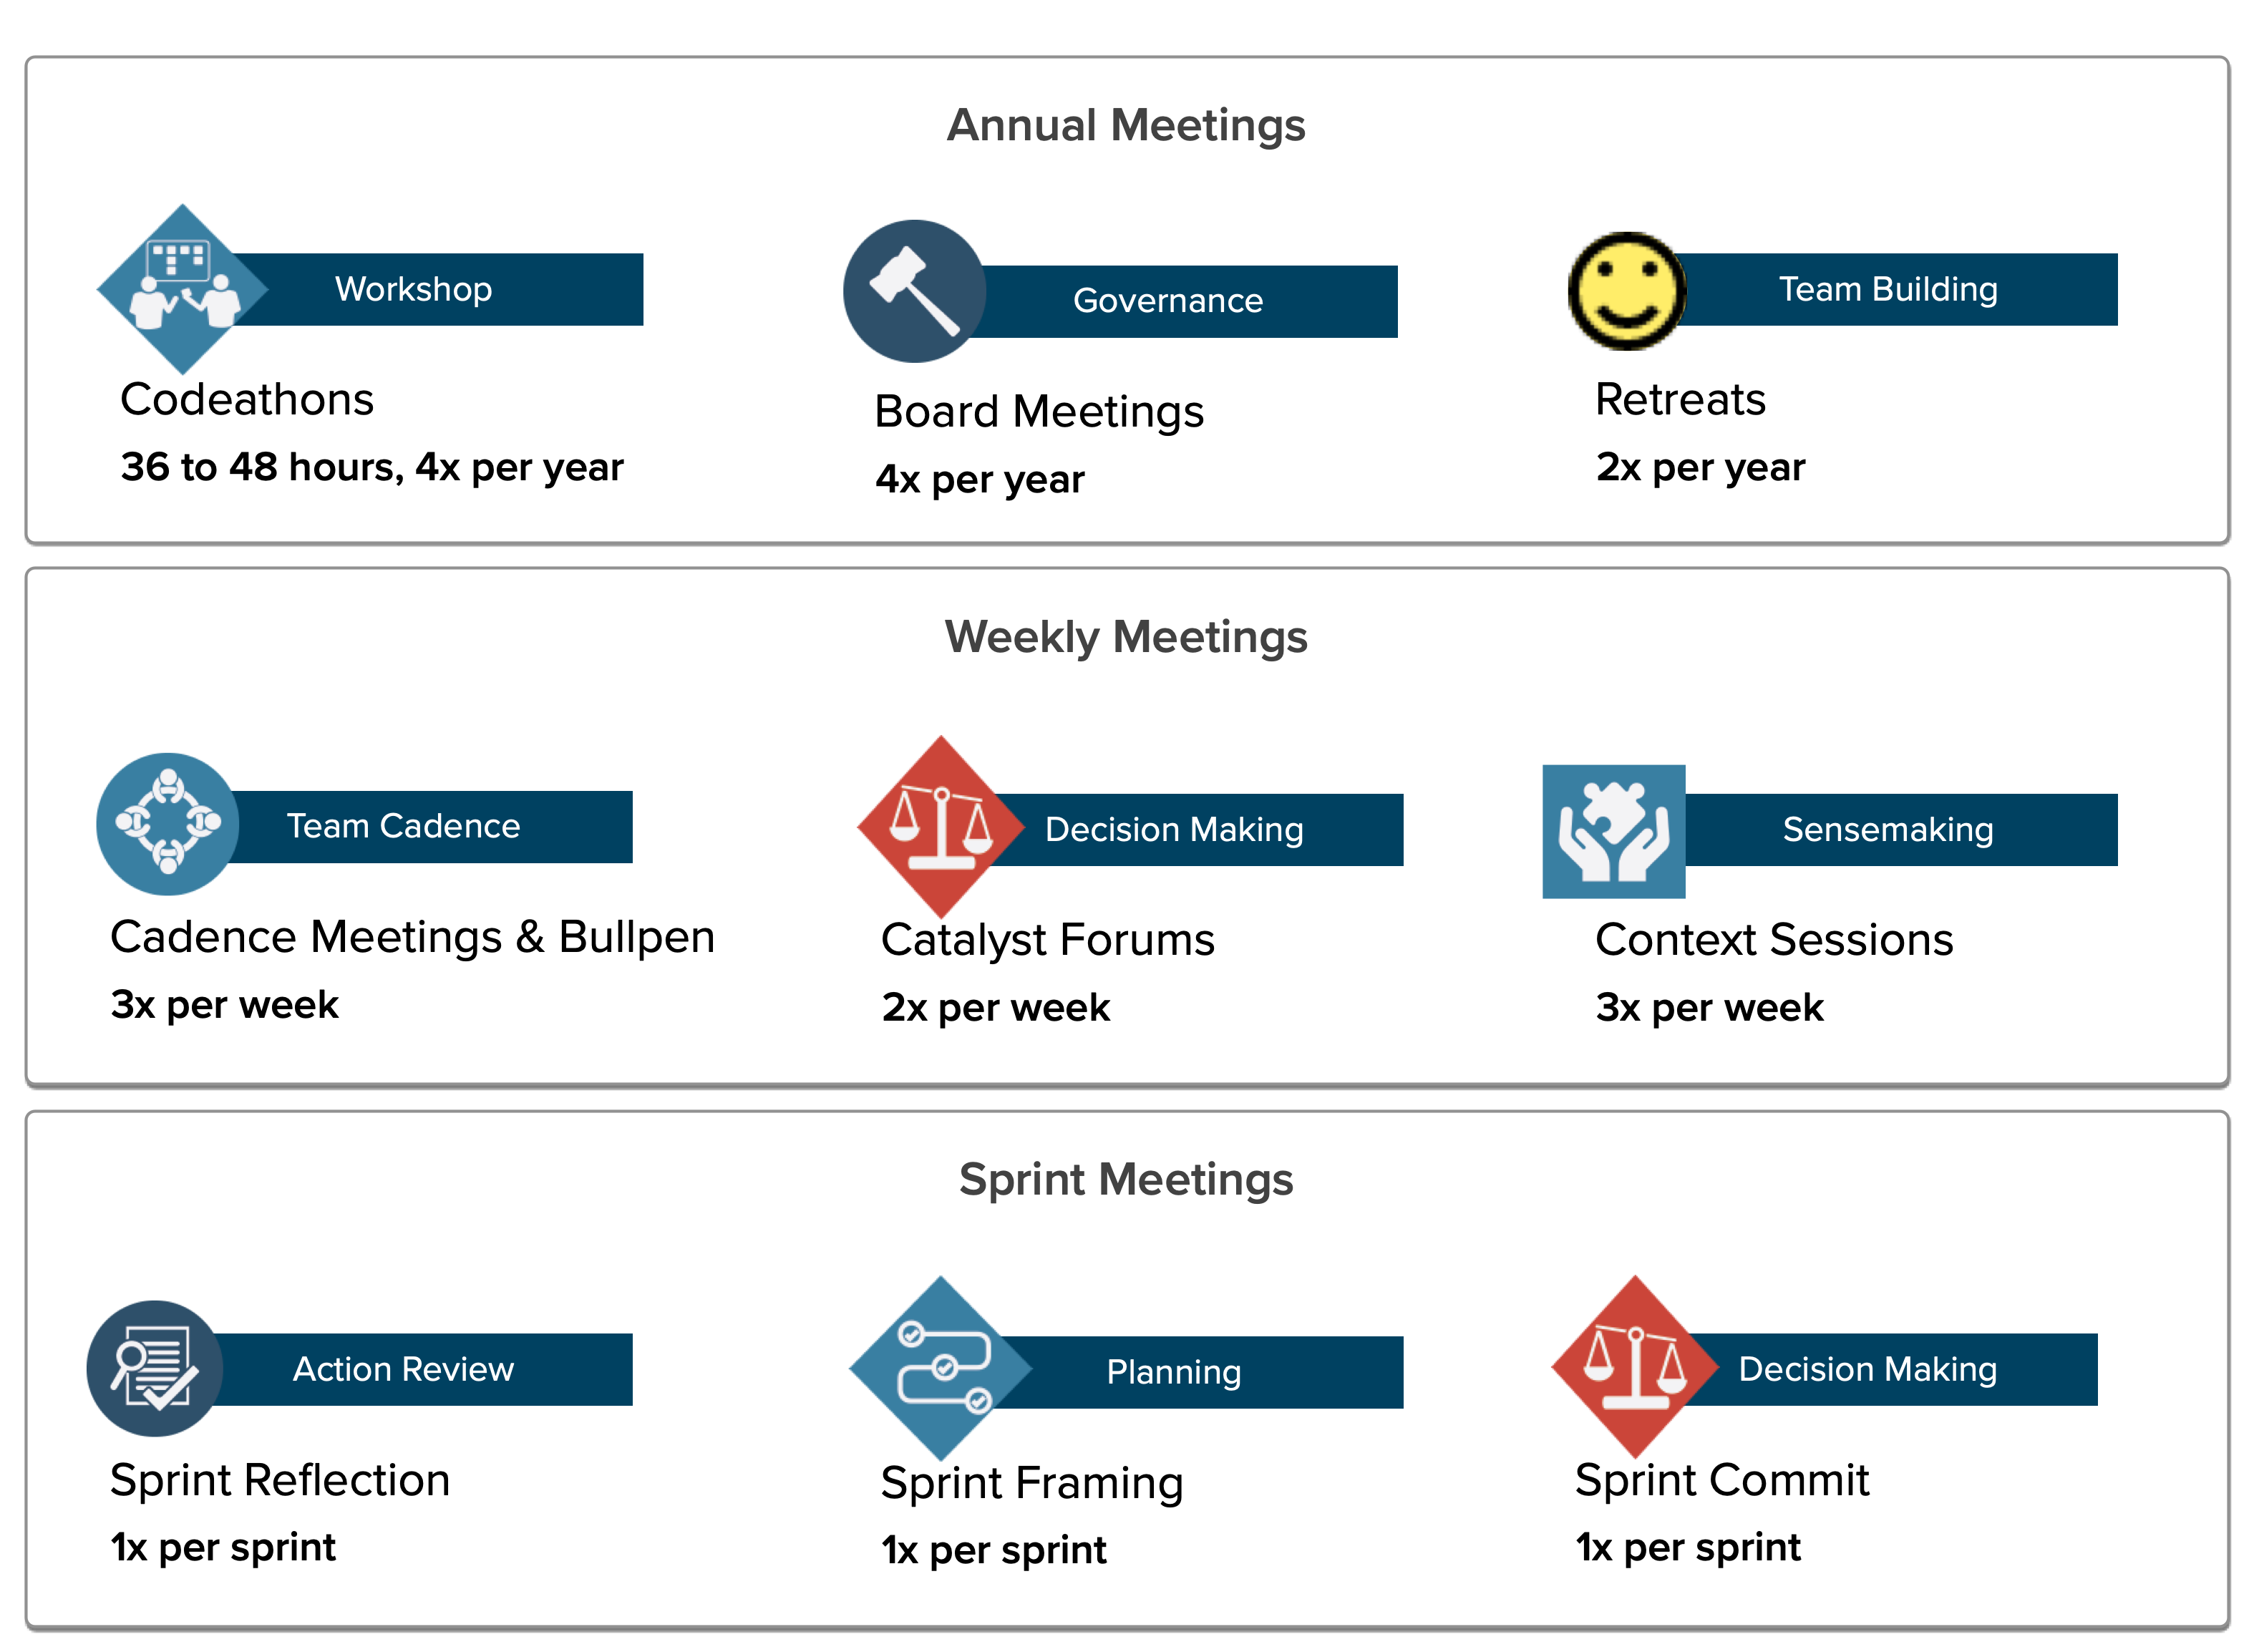 Annual: Codathons, Board meetings, retreats. Weekly: Cadence & Bullpen meetings, Catalyst forums, Context sessions; Per Sprint: reflection, framing, commit